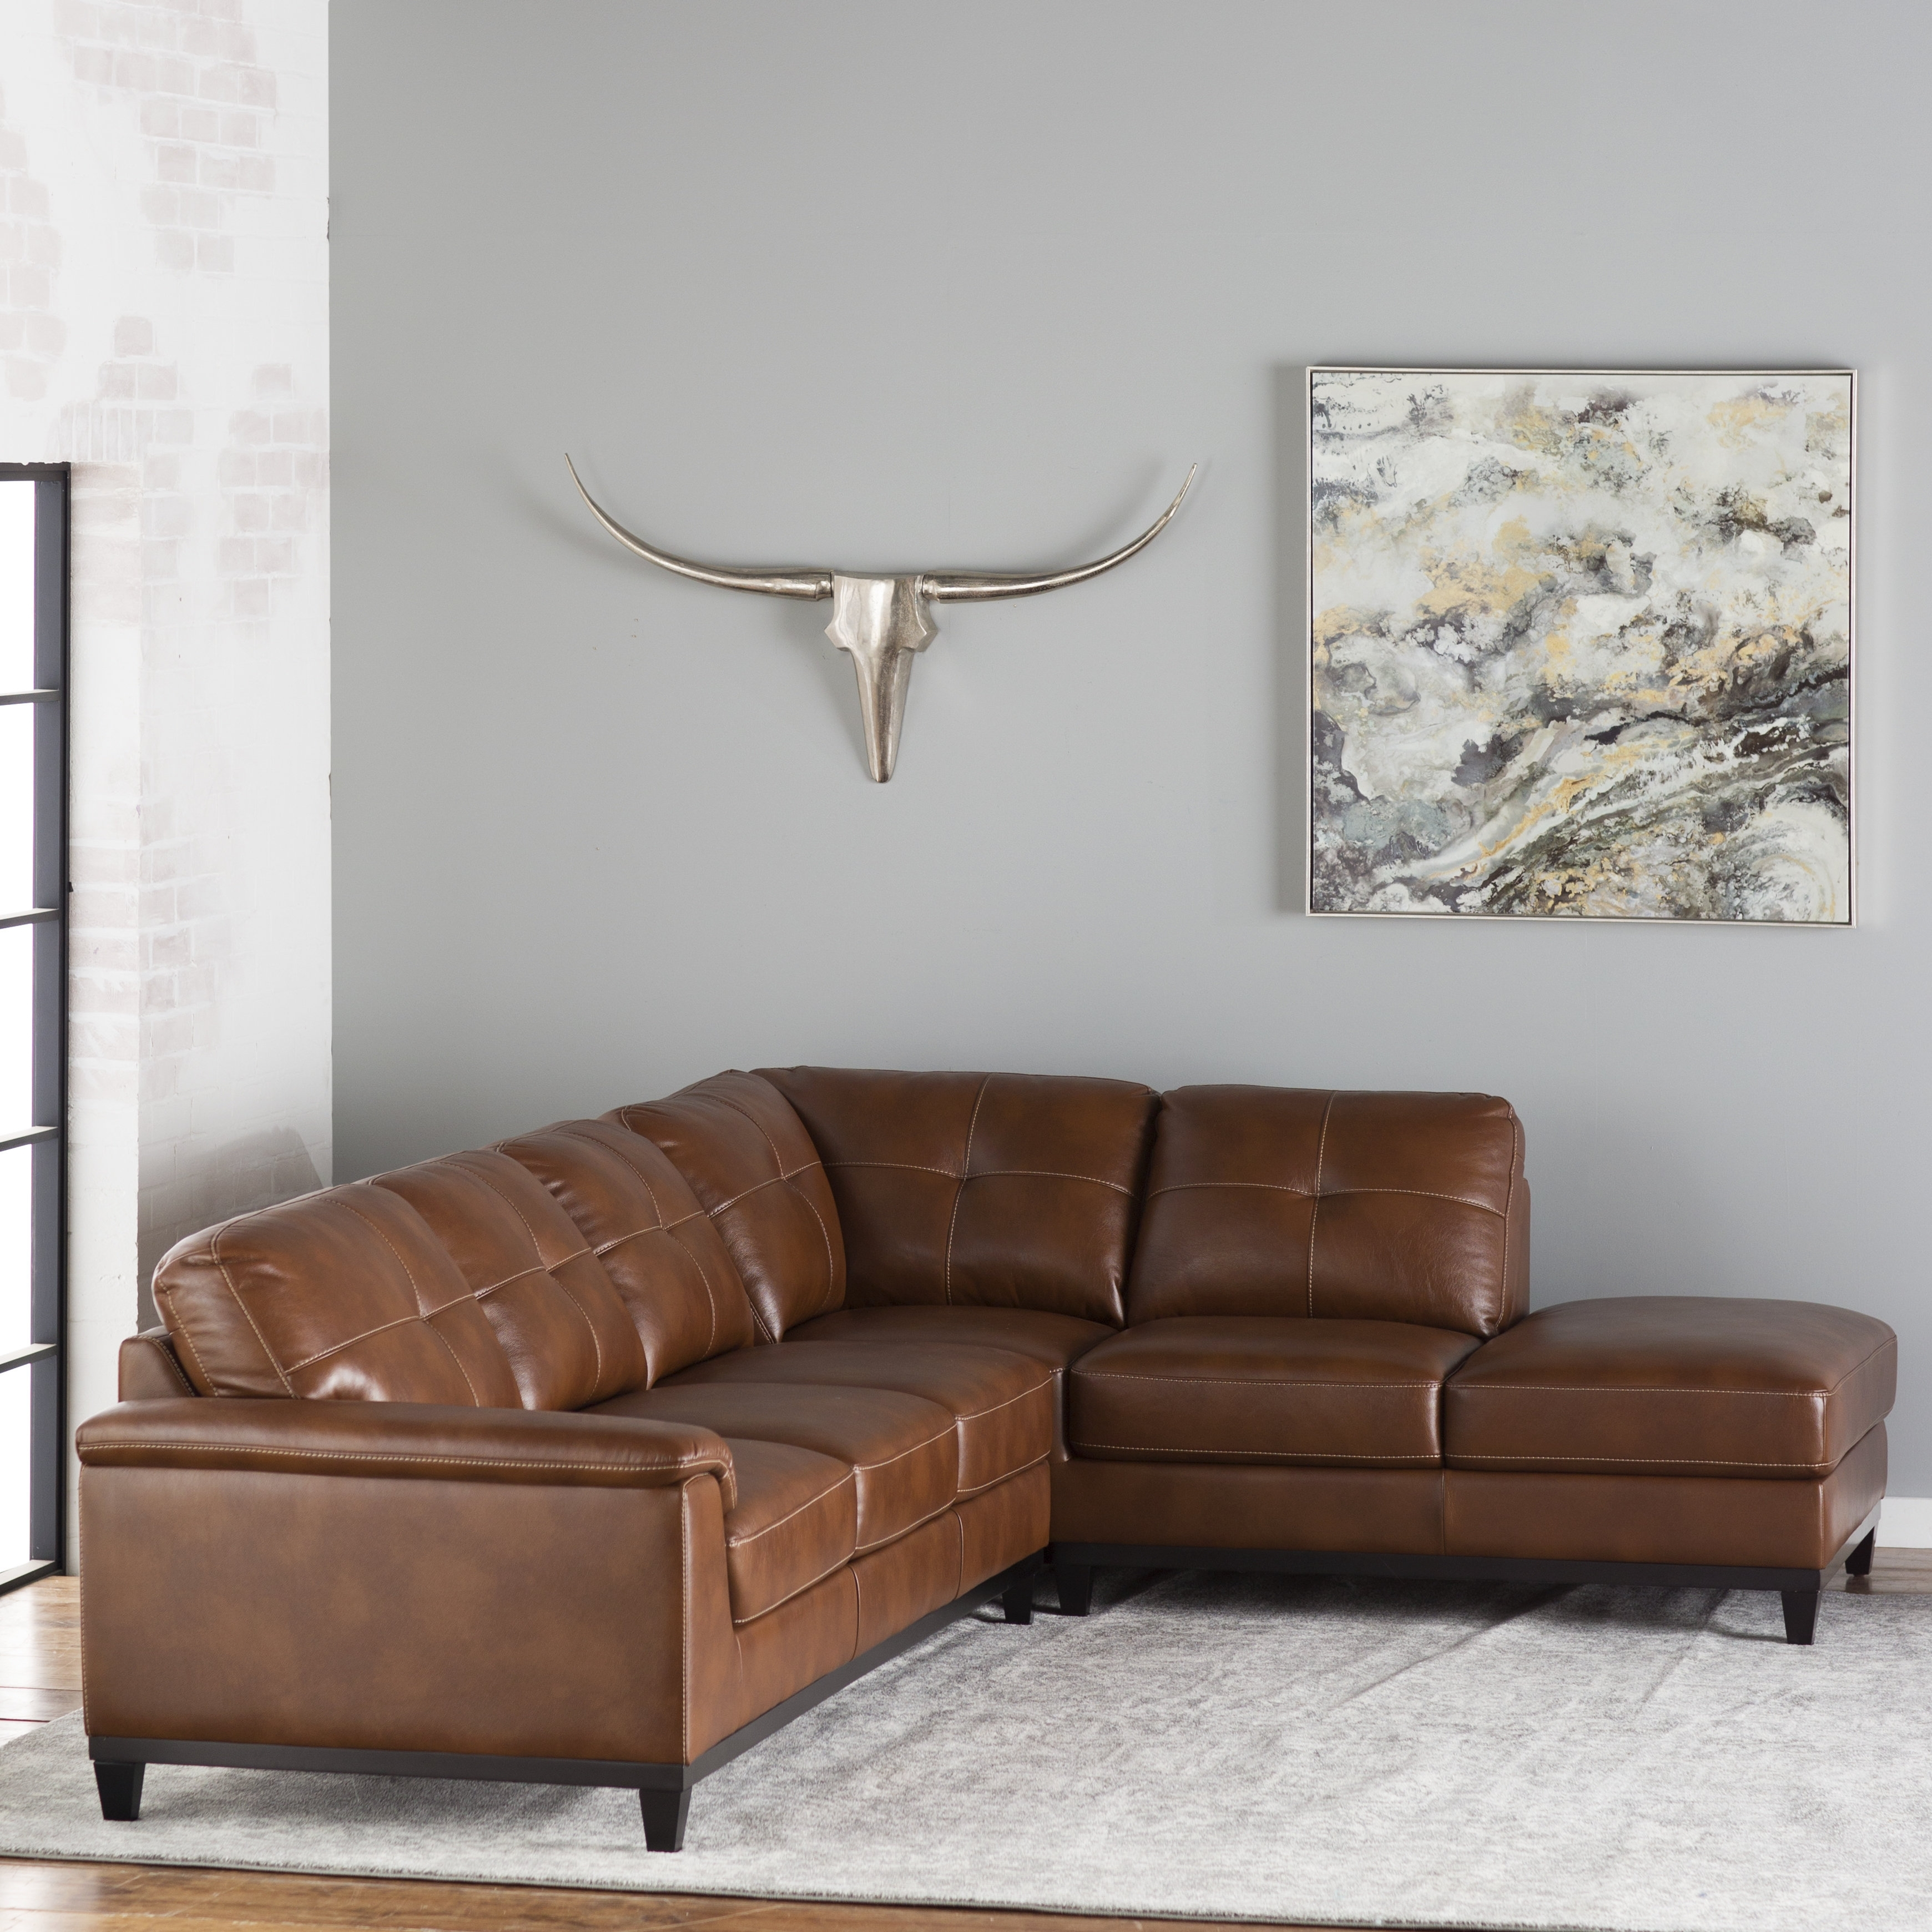 Trent Austin Design Lonato Sectional & Reviews | Wayfair pertaining to Karen 3 Piece Sectionals (Image 28 of 30)